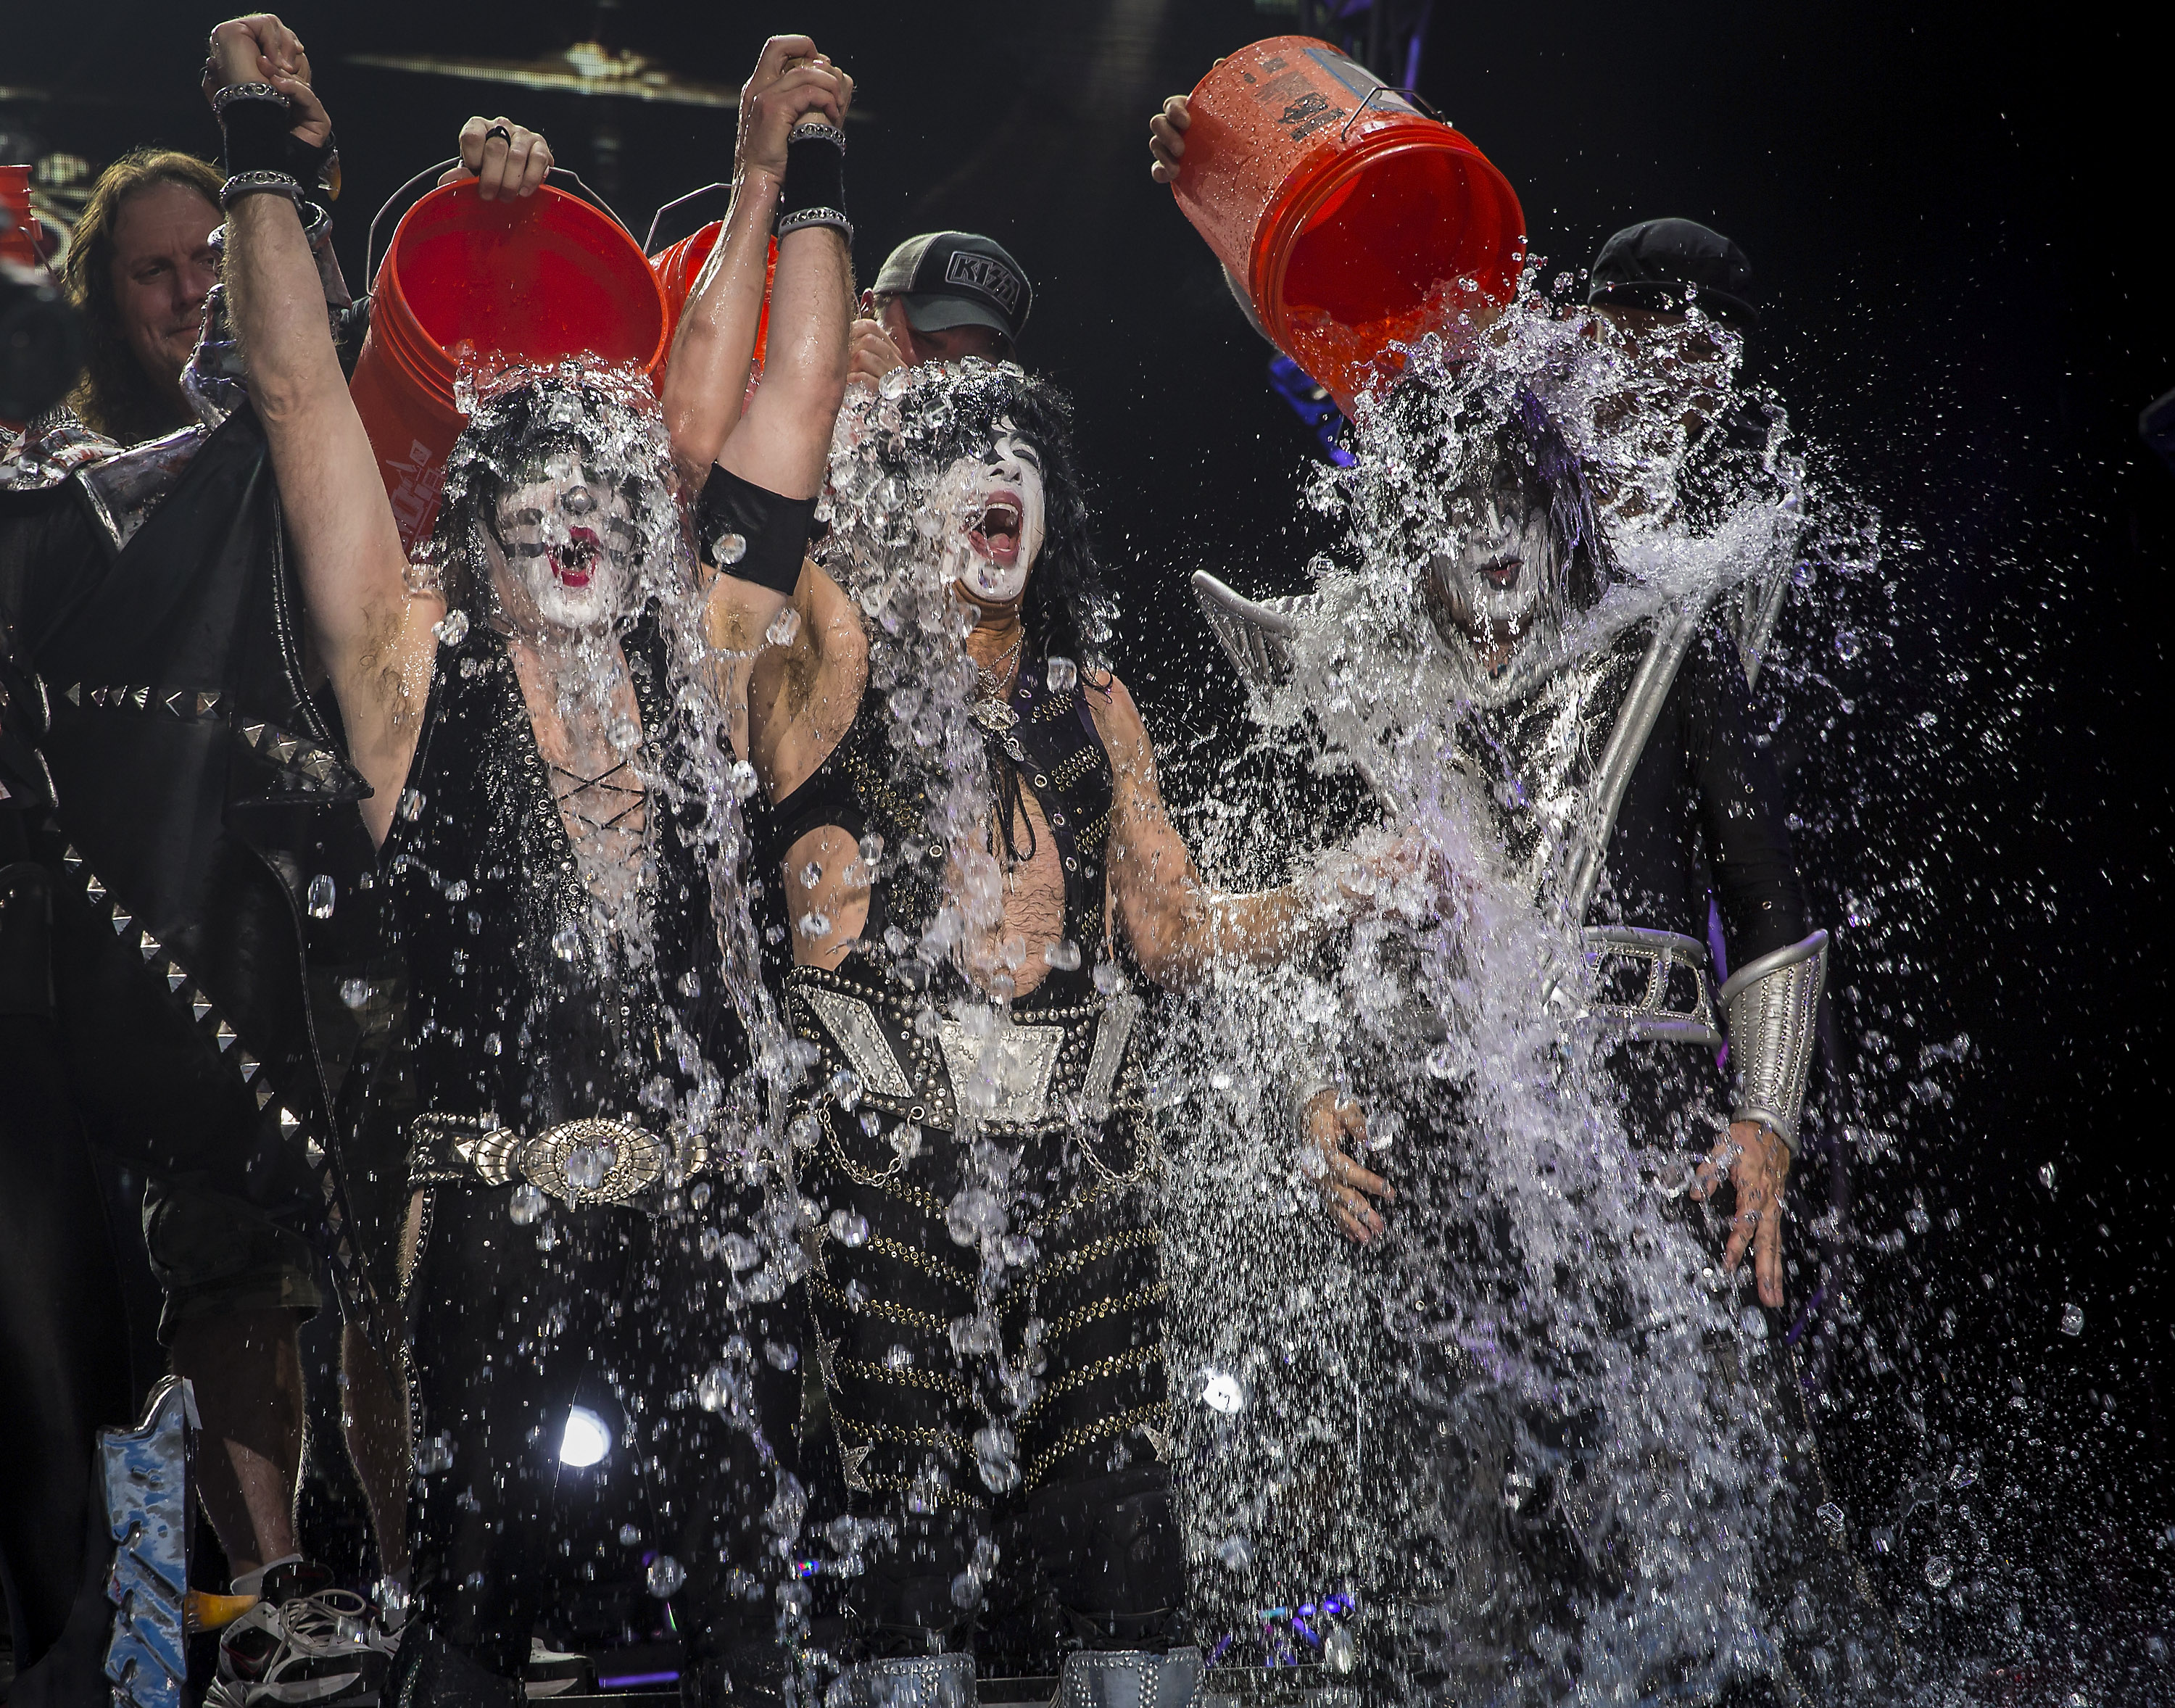 Eric Singer, Paul Stanley and Tommy Thayer of the band KISS participates in the ALS Ice Bucket Challenge at Klipsch Music Center on August 22, 2014 in Noblesville, Indiana.